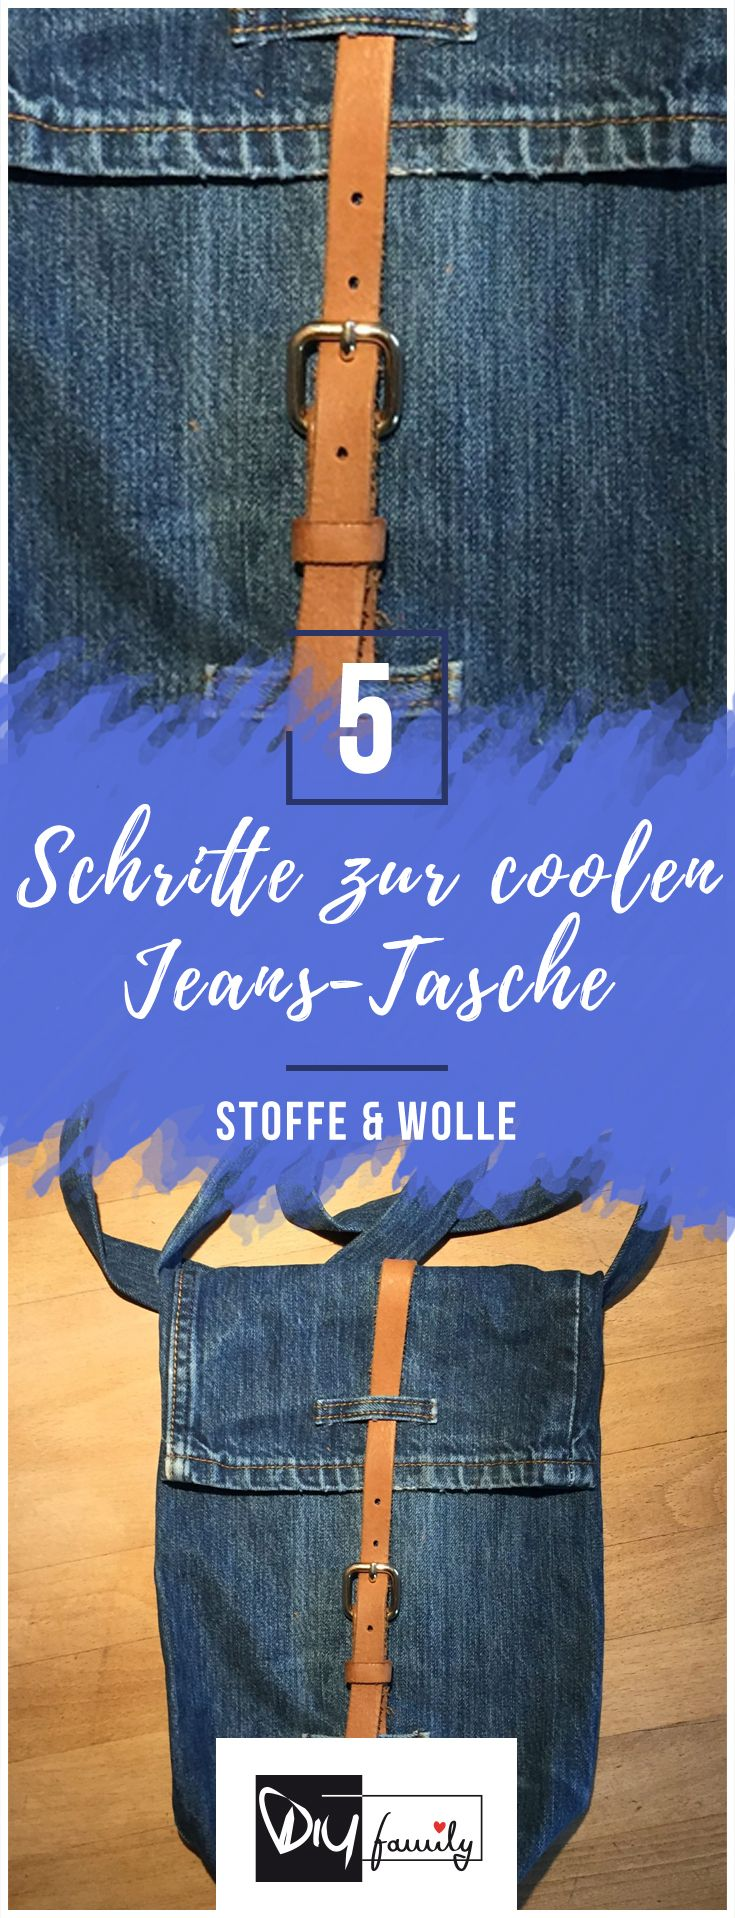 Coole Upcycling-Jeans-Tasche schnell genäht  #diy, #selfmade, #jeans, #bag, #creative, #tutorial, #easy, #recycling